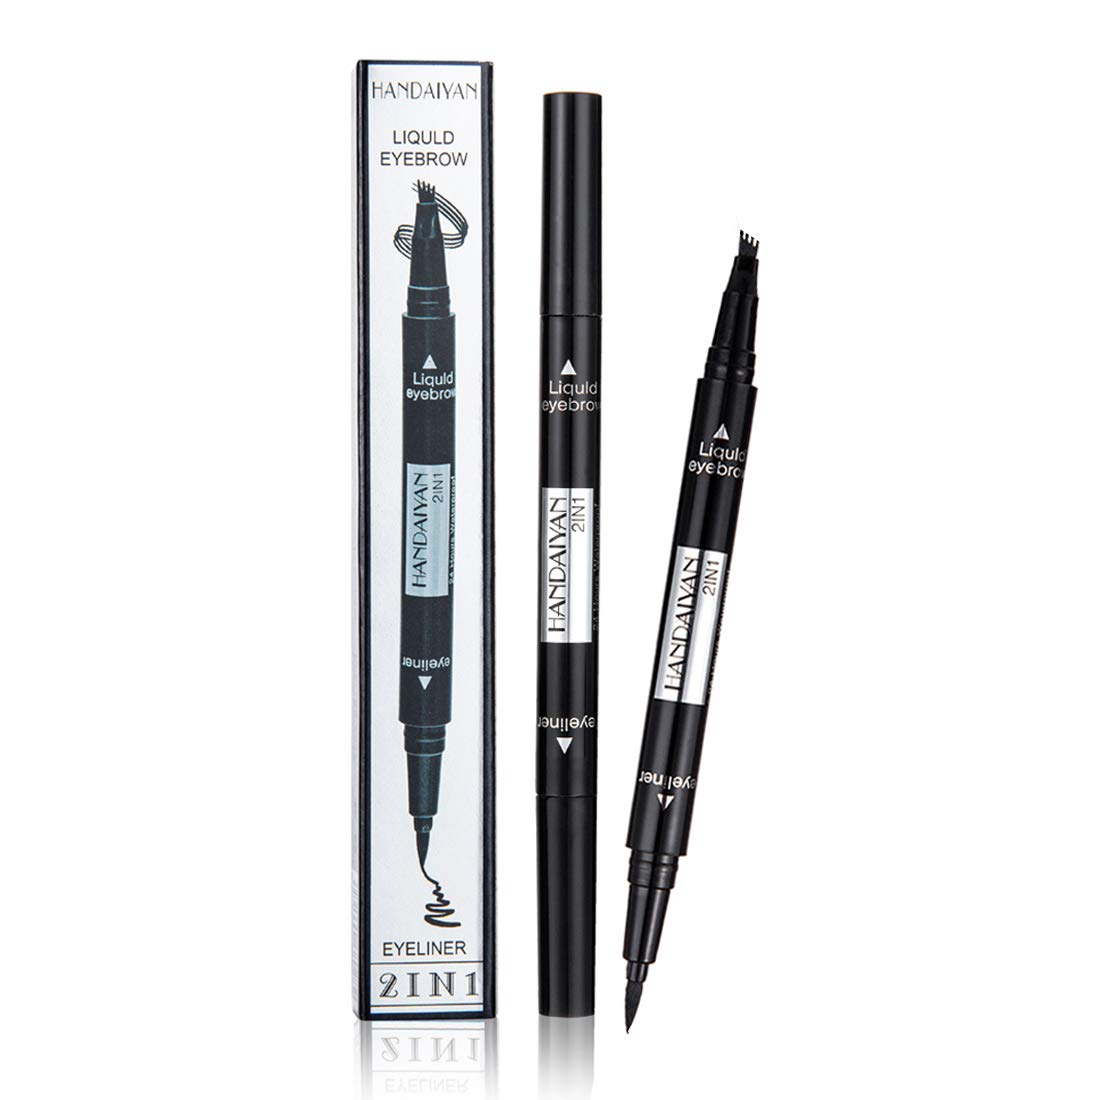 Vtrem 2 in 1 Microblade Eyebrow Pen + Eyeliner Latest Fork-tips Tattoo Eye Brow Pencil with Black Liquid Eyeliner Double-headed Waterproof Stay All Day Eyebrow Pencils and Eye Liner (#05 Black)